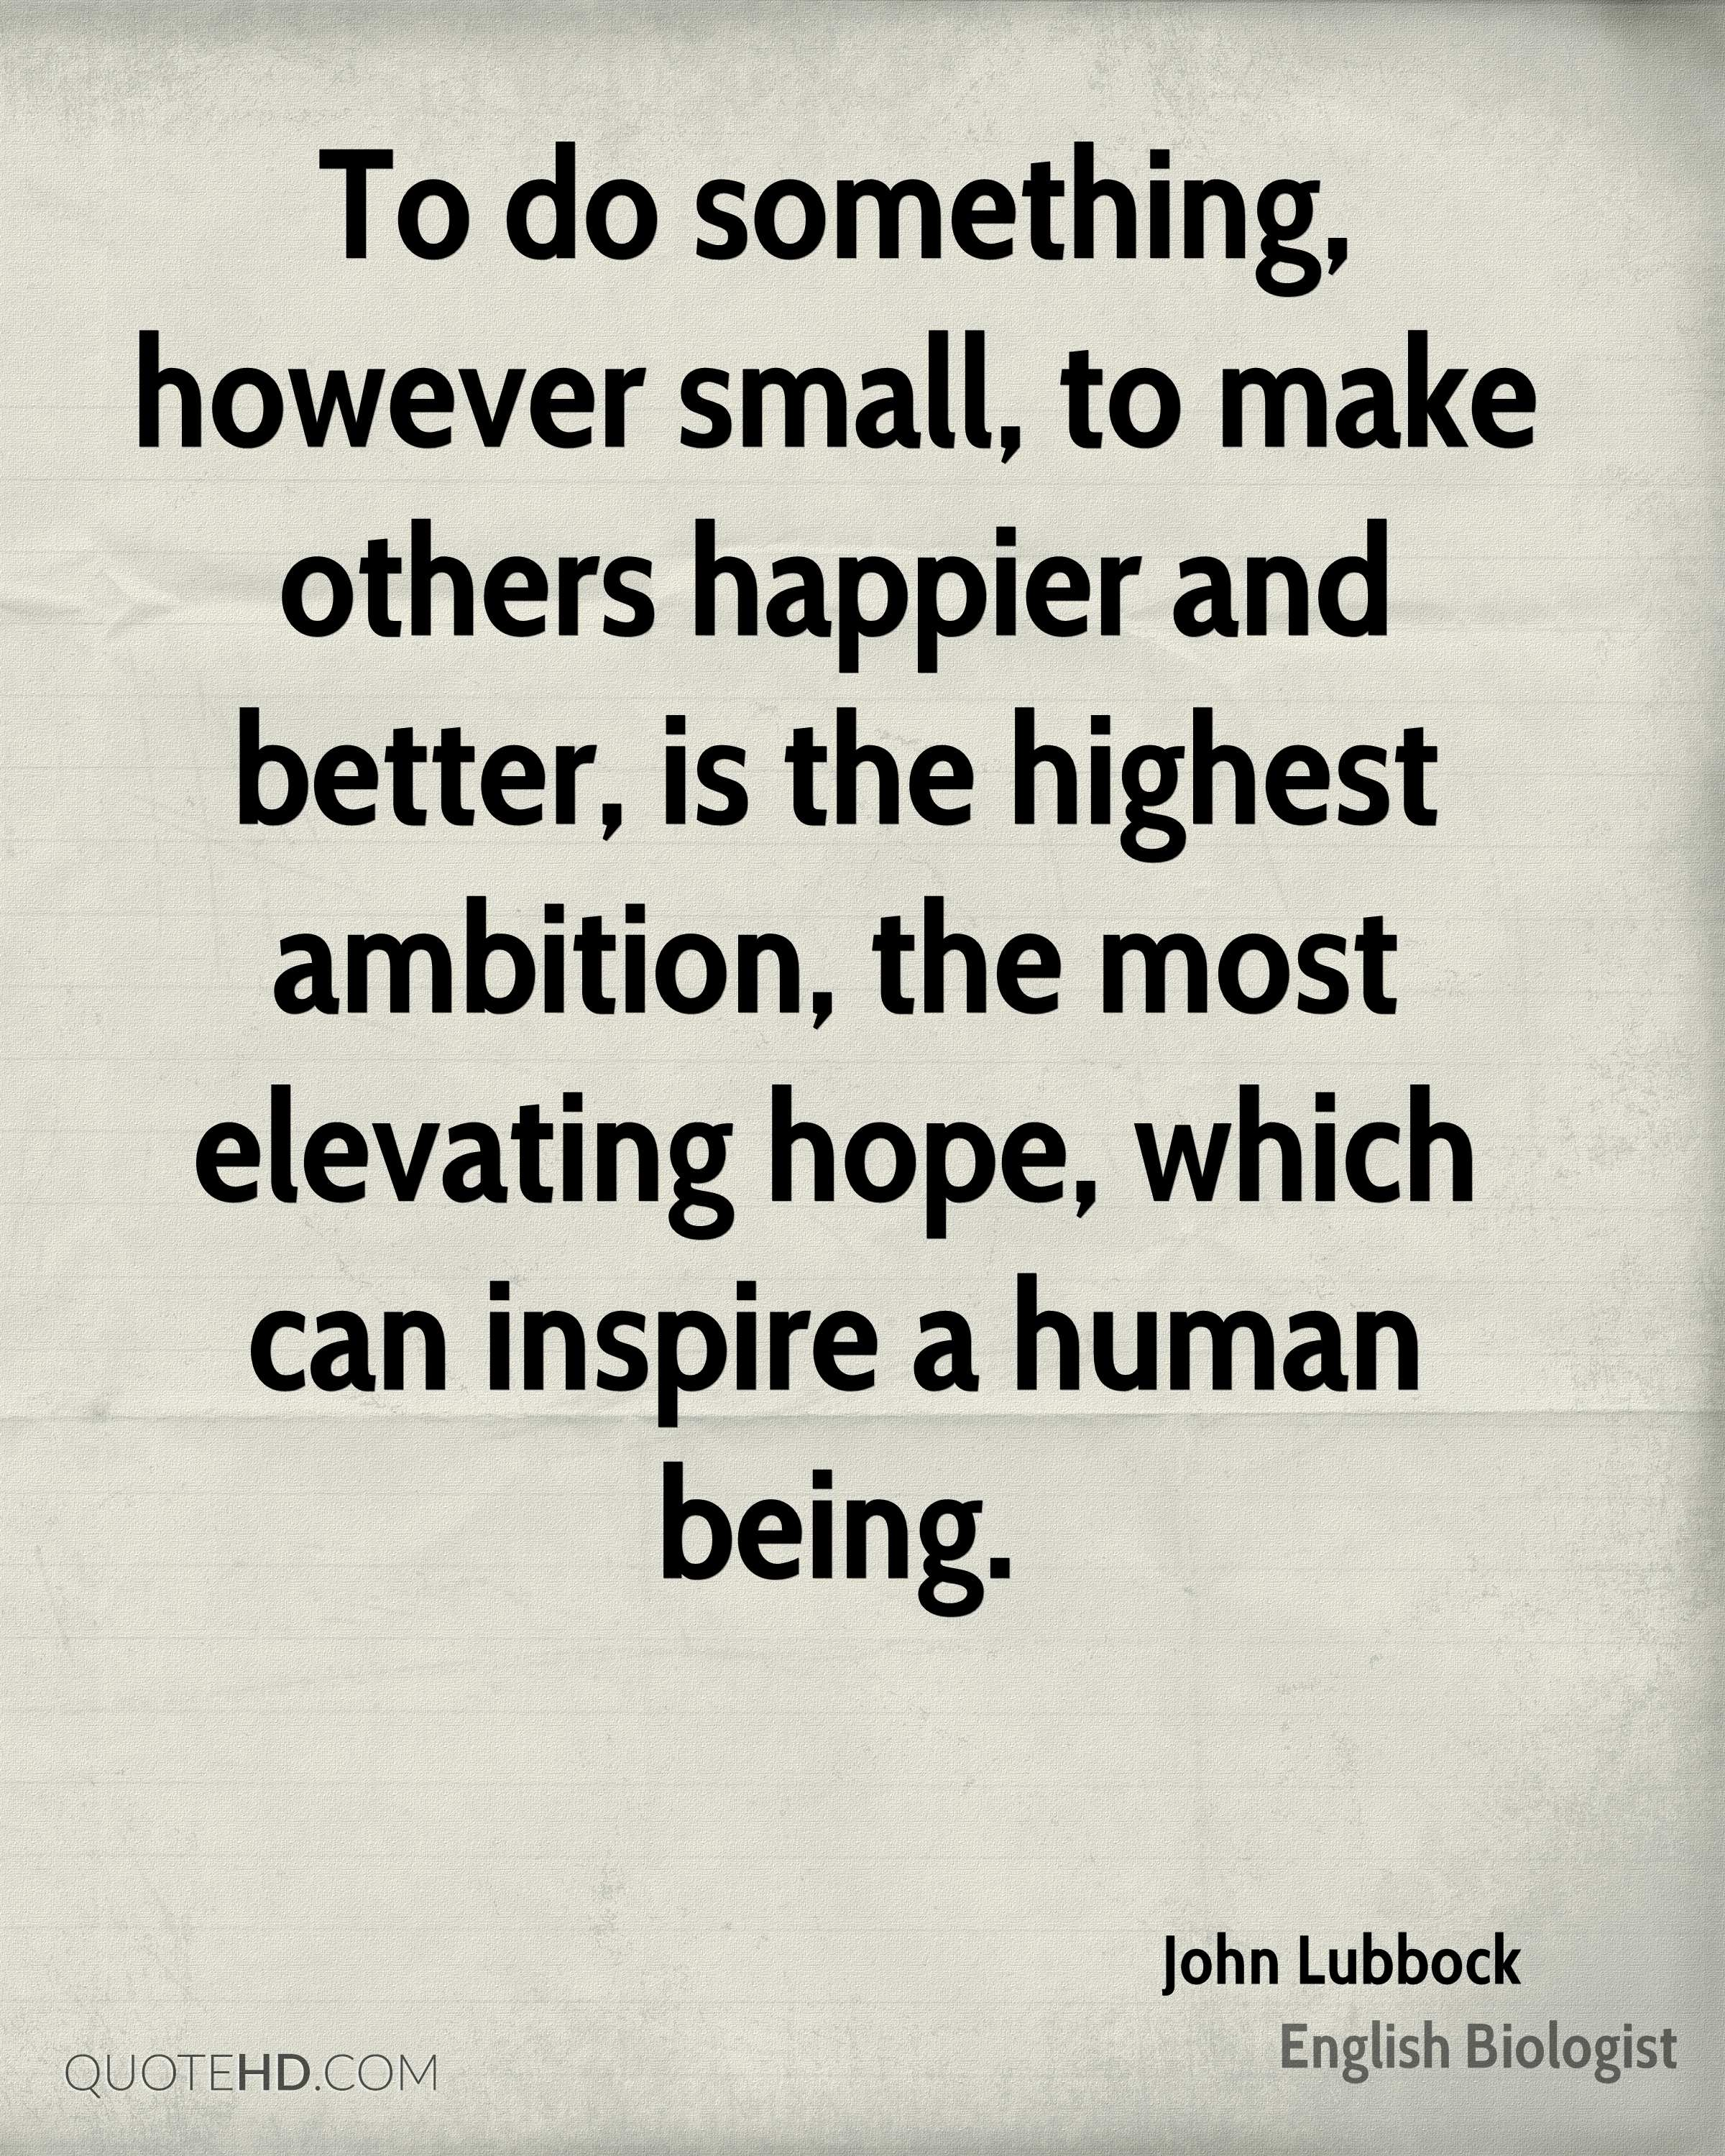 To do something, however small, to make others happier and better, is the highest ambition, the most elevating hope, which can inspire a human being.